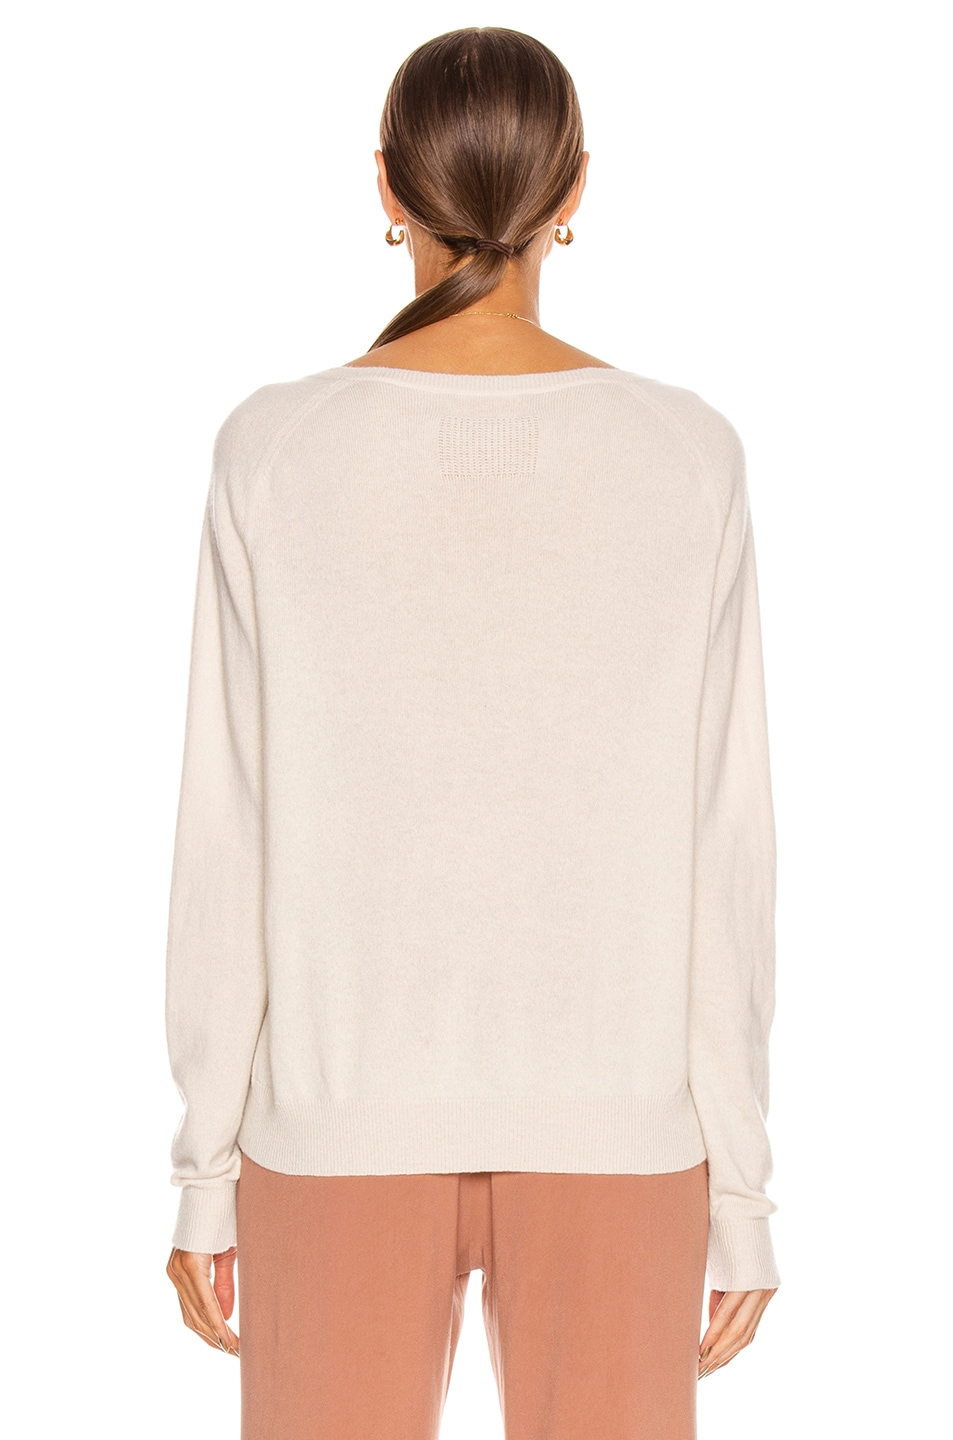 Image 3 of NILI LOTAN Ashbury Cashmere Sweater in Ivory